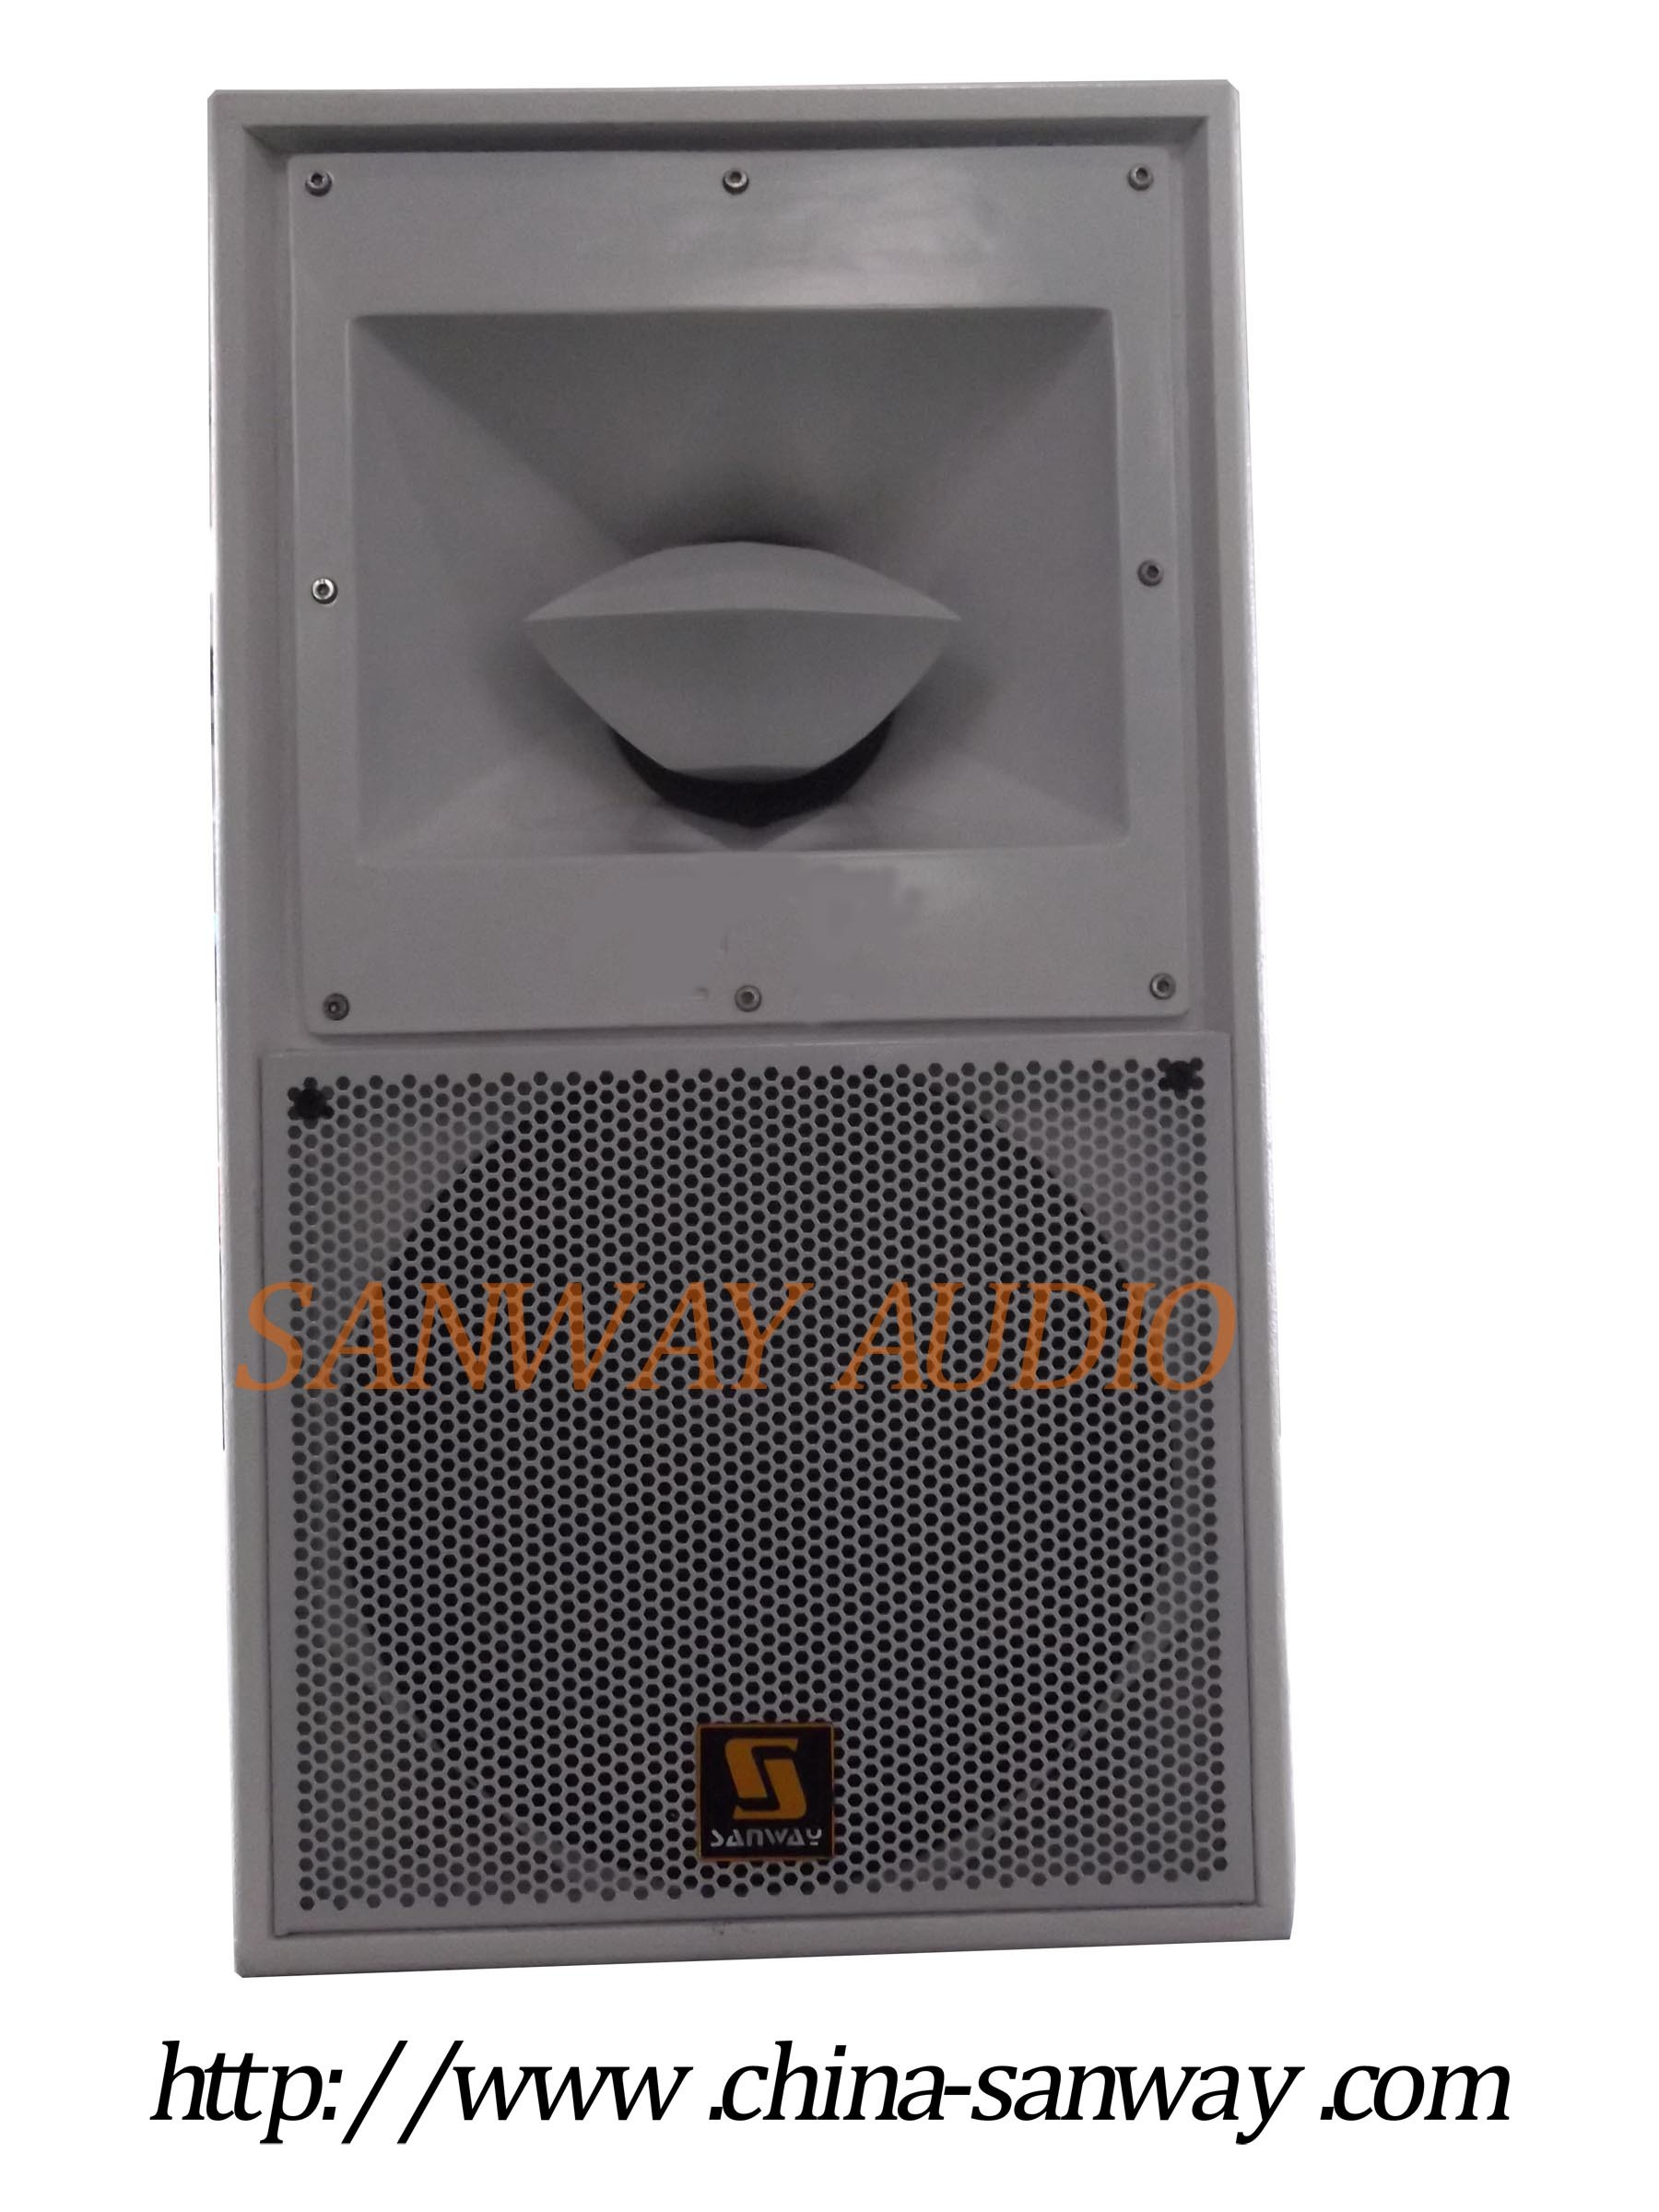 Sanway R1 Sound System 12 Inch Subwoofer Loudspeaker Box pictures & photos